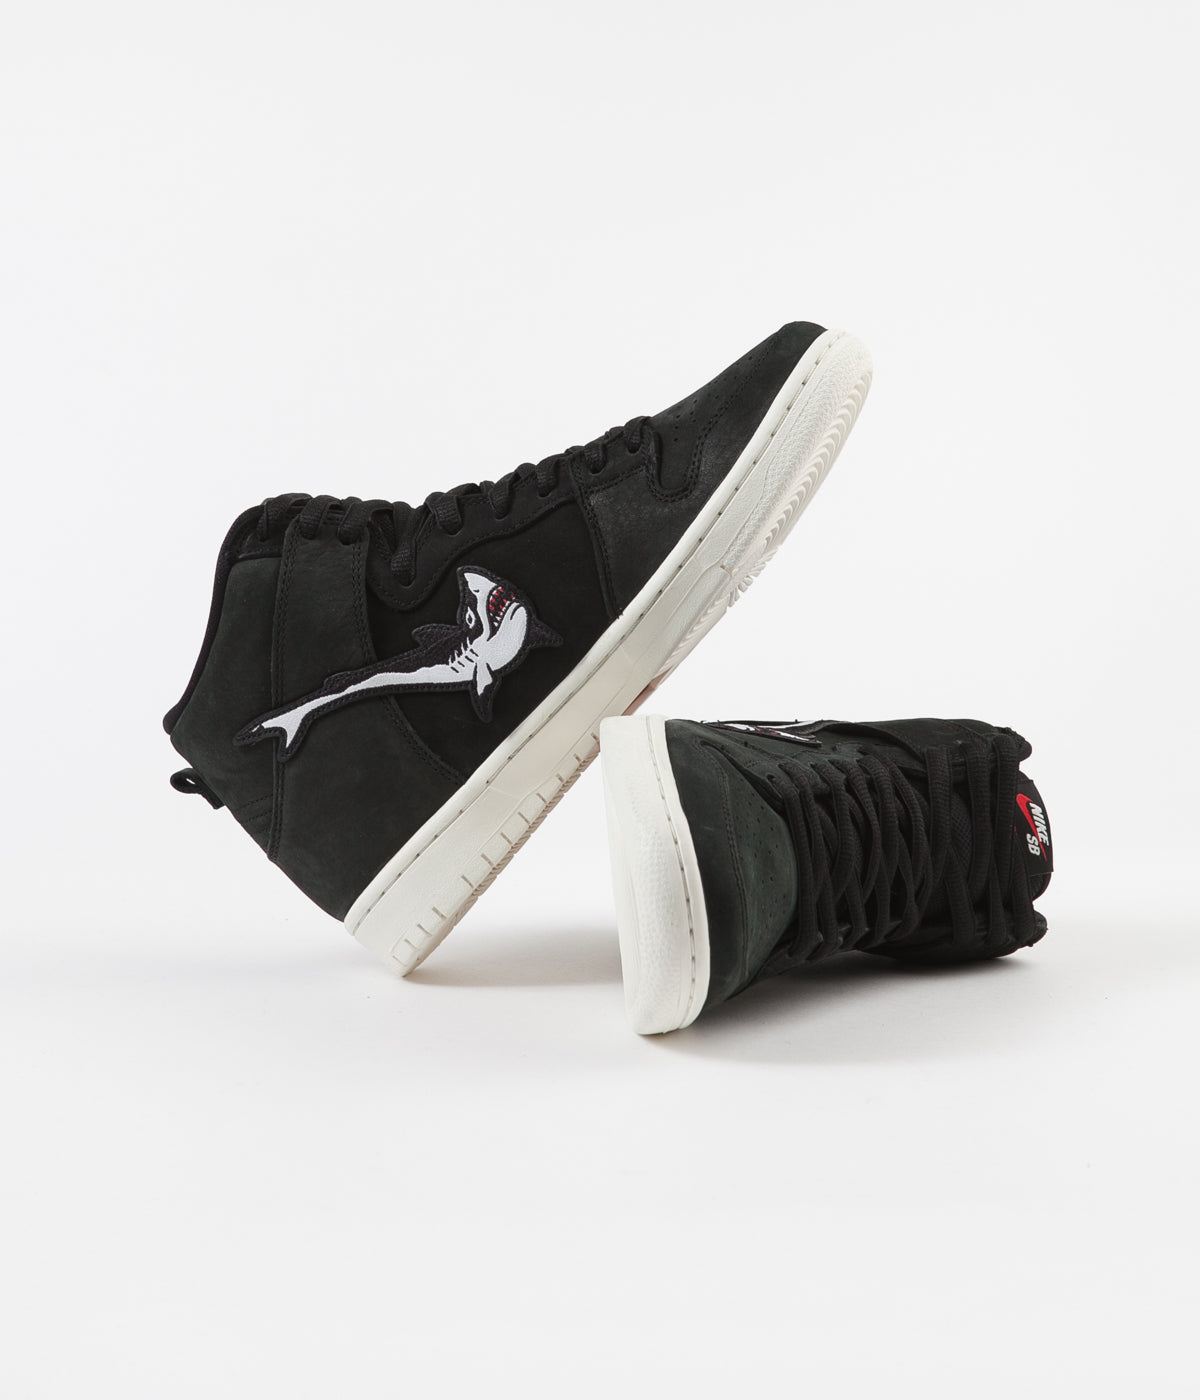 Nike SB Orange Label Dunk High Pro 'Oski' Shoes - Black / White - Black - Sail